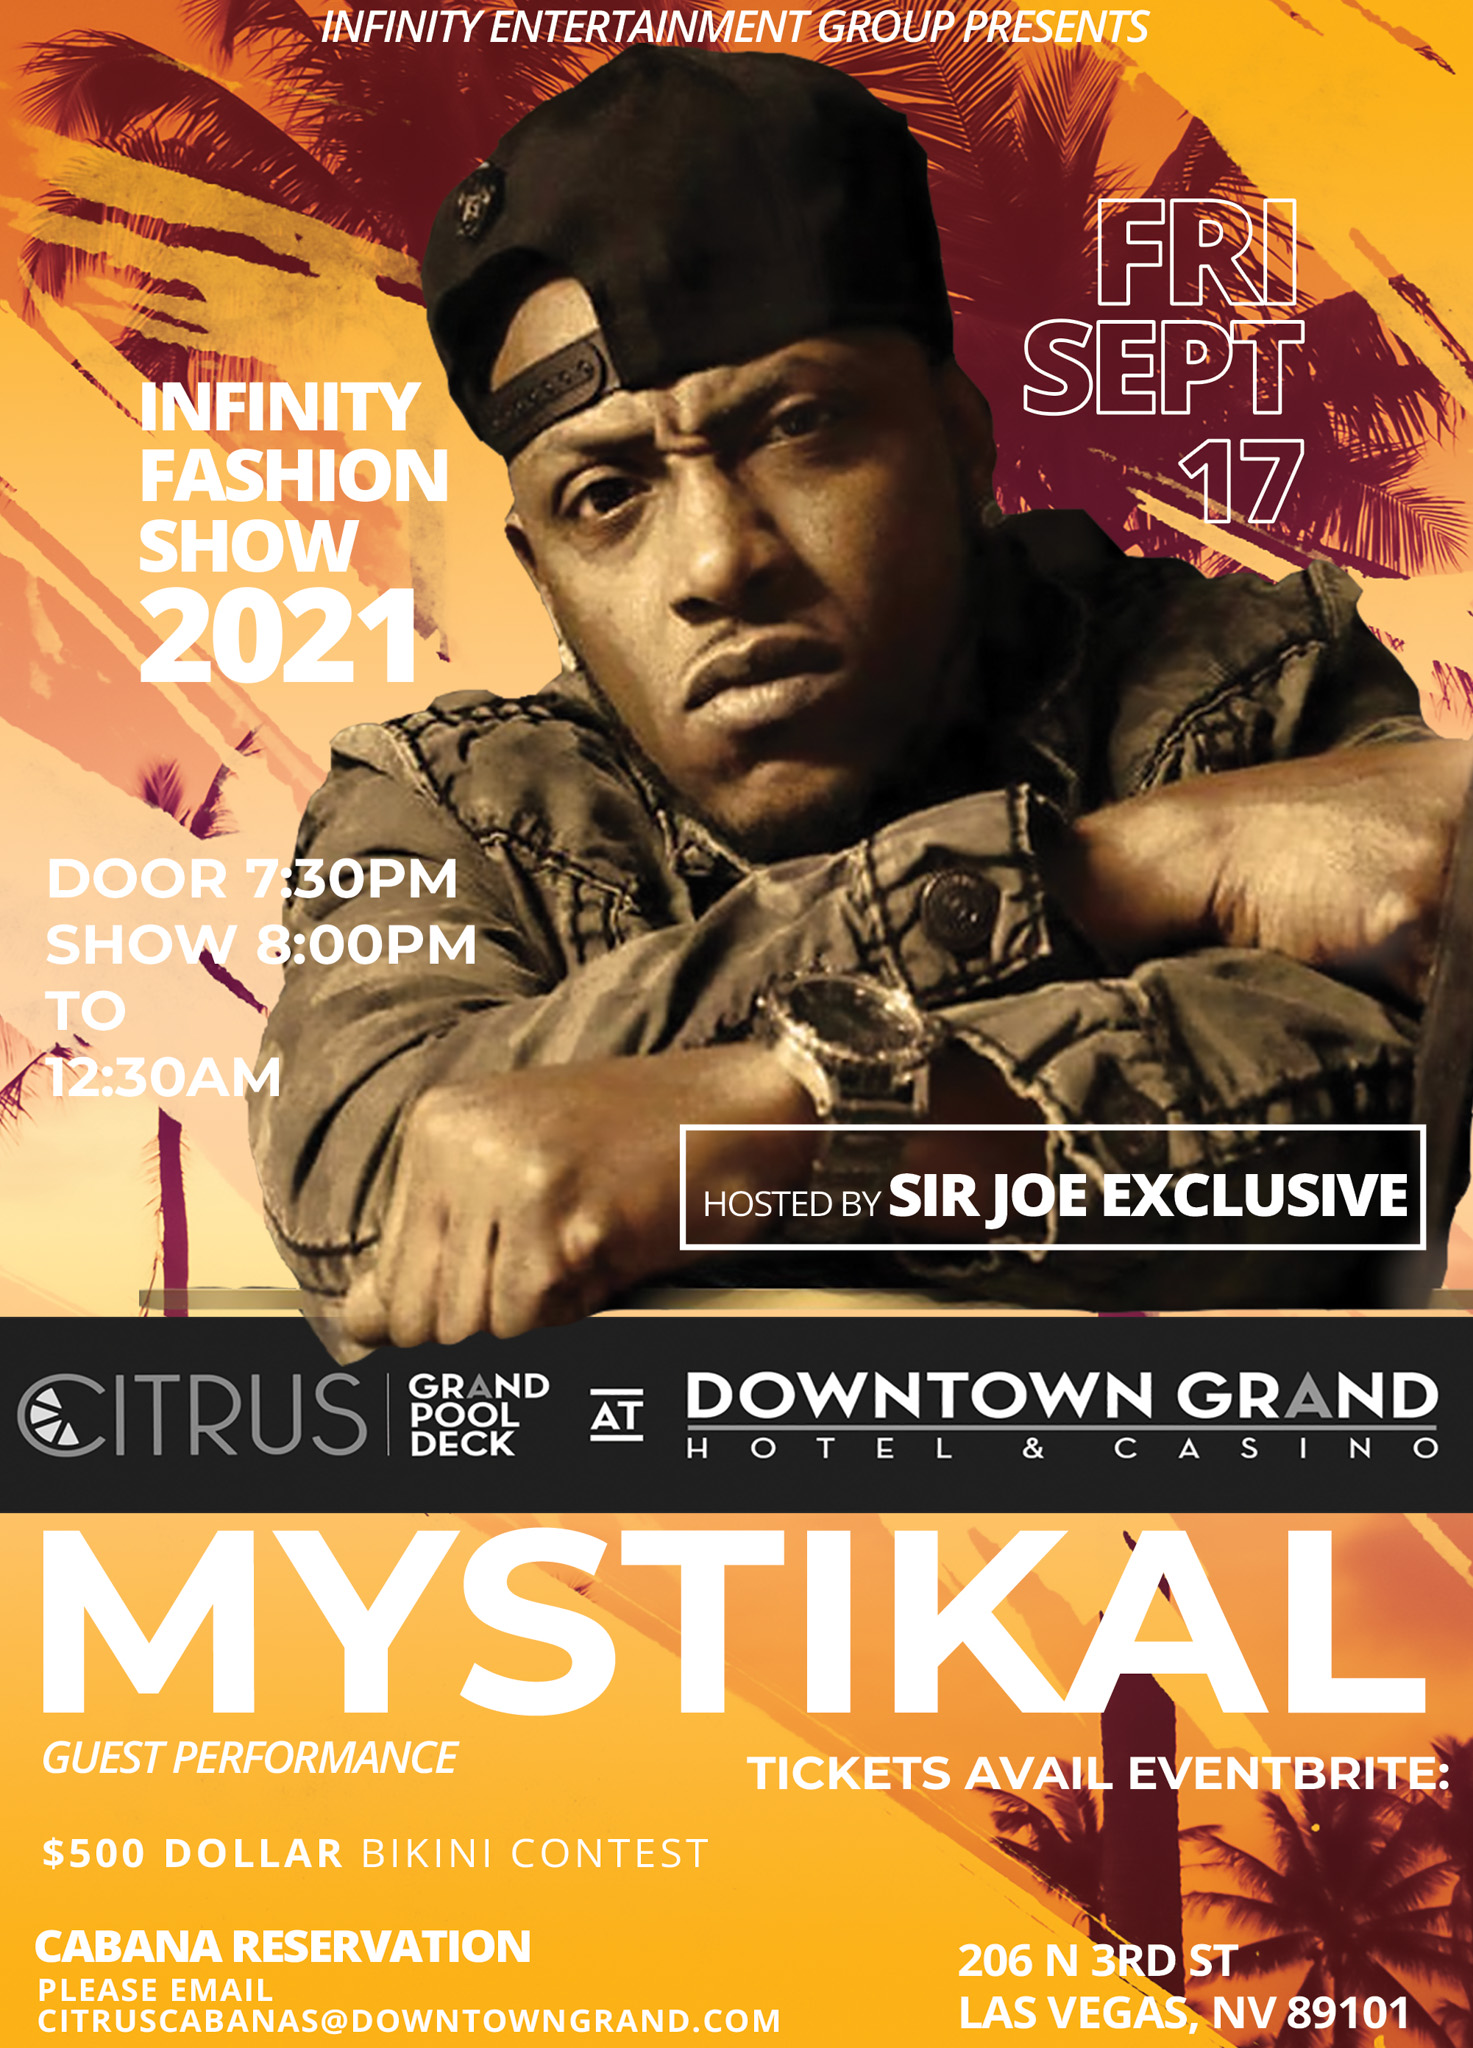 Infinity Fashion Show 2021 Hosted By Sir Joe Exclusive w/ Mystical Guest Performance